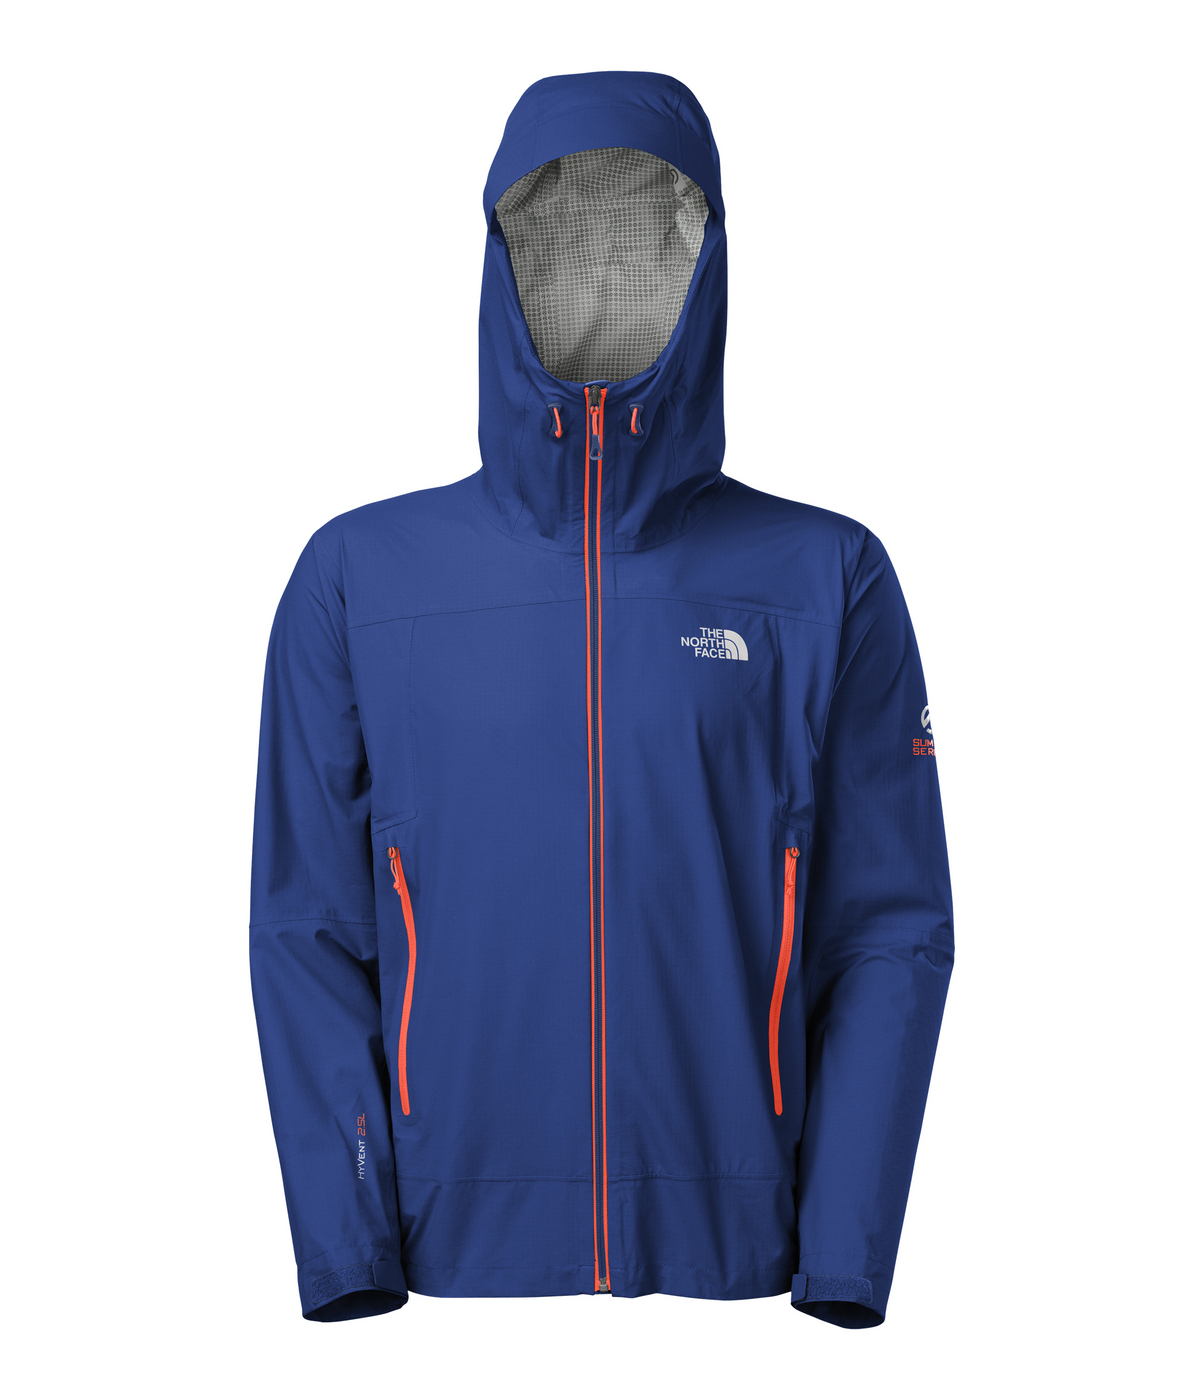 The North Face Men's Leonidas Rain Jacket